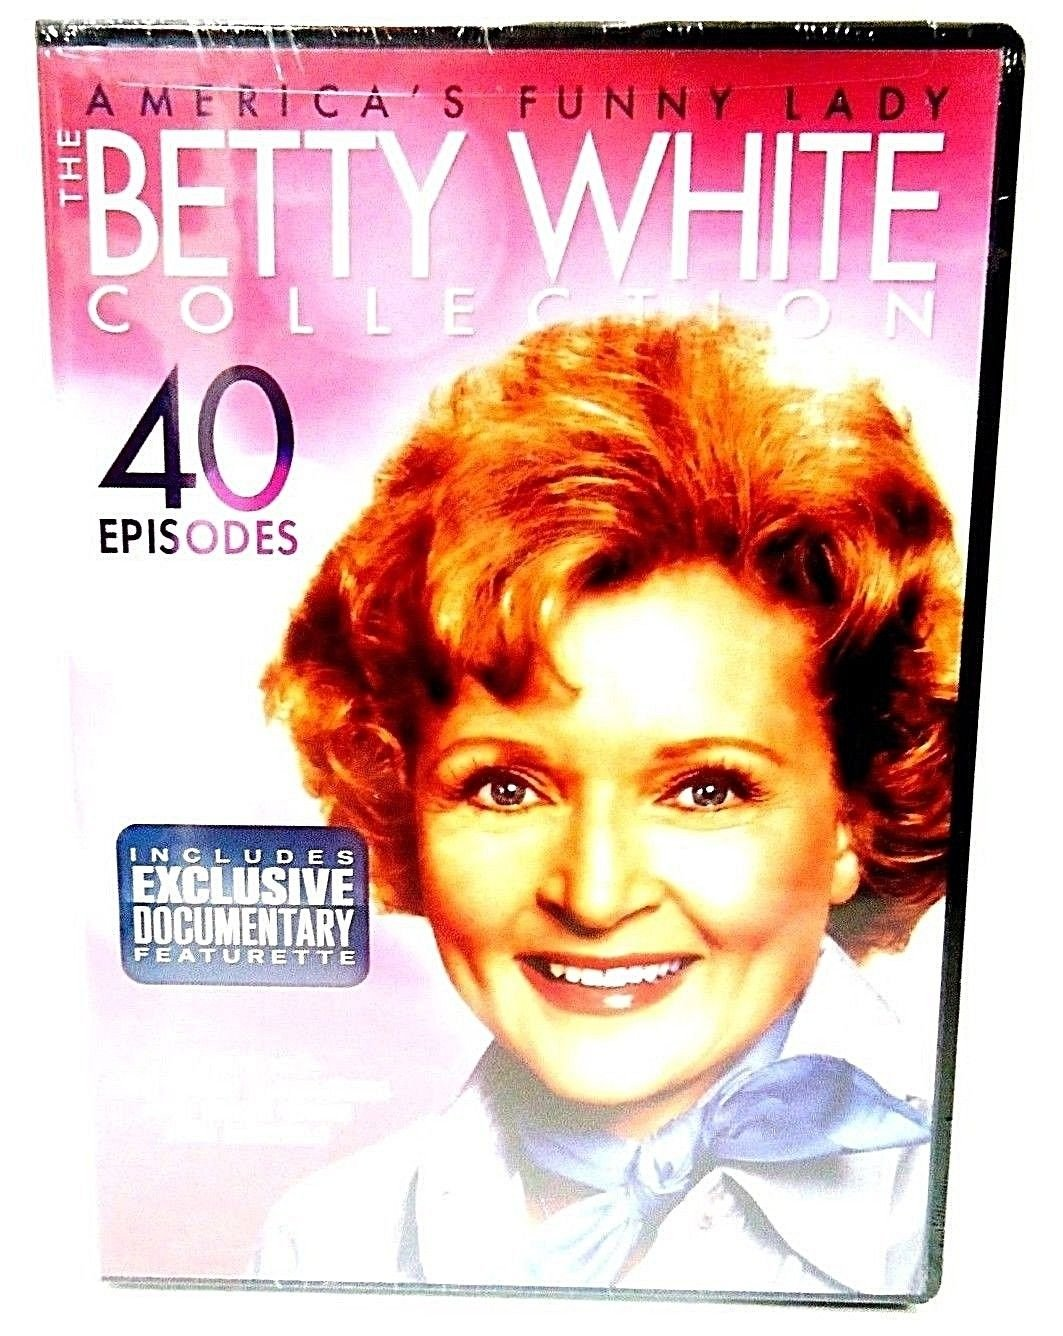 THE BETTY WHITE COLLECTION - DVD - 4-DISC SET - 40 EPISODES - NEW - COMEDY